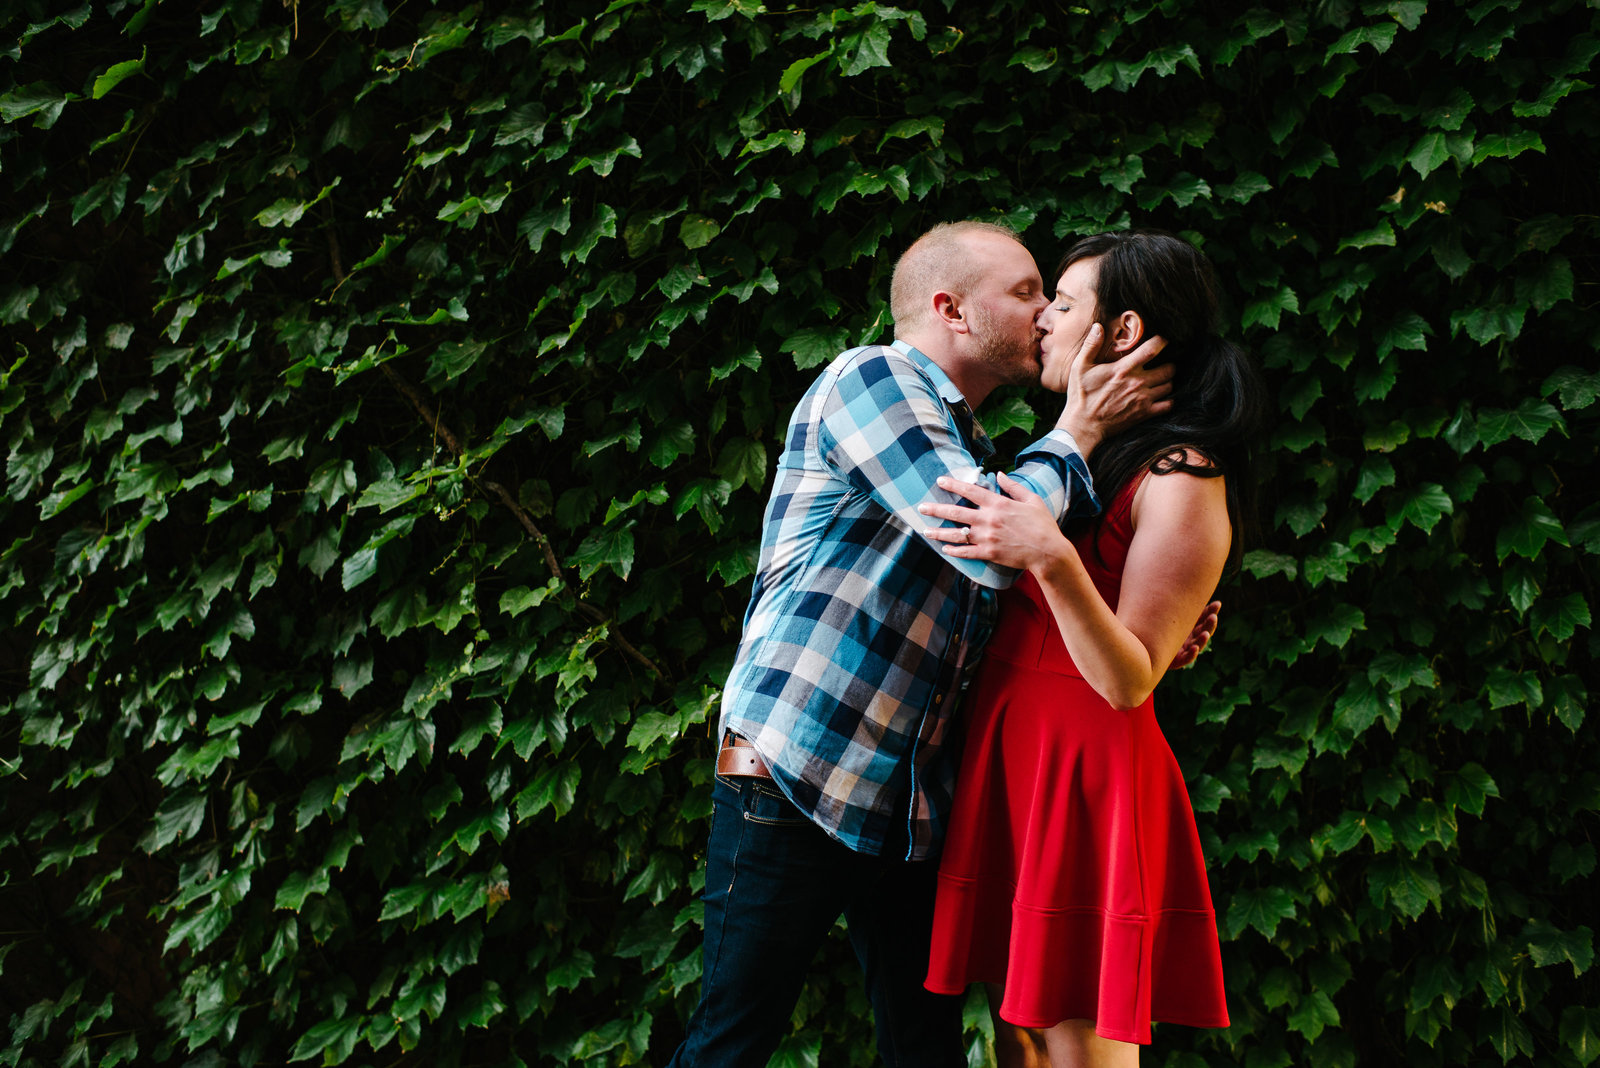 Cleveland OH man in blue plaid shirt woman in red dress kissing in front of green ivy